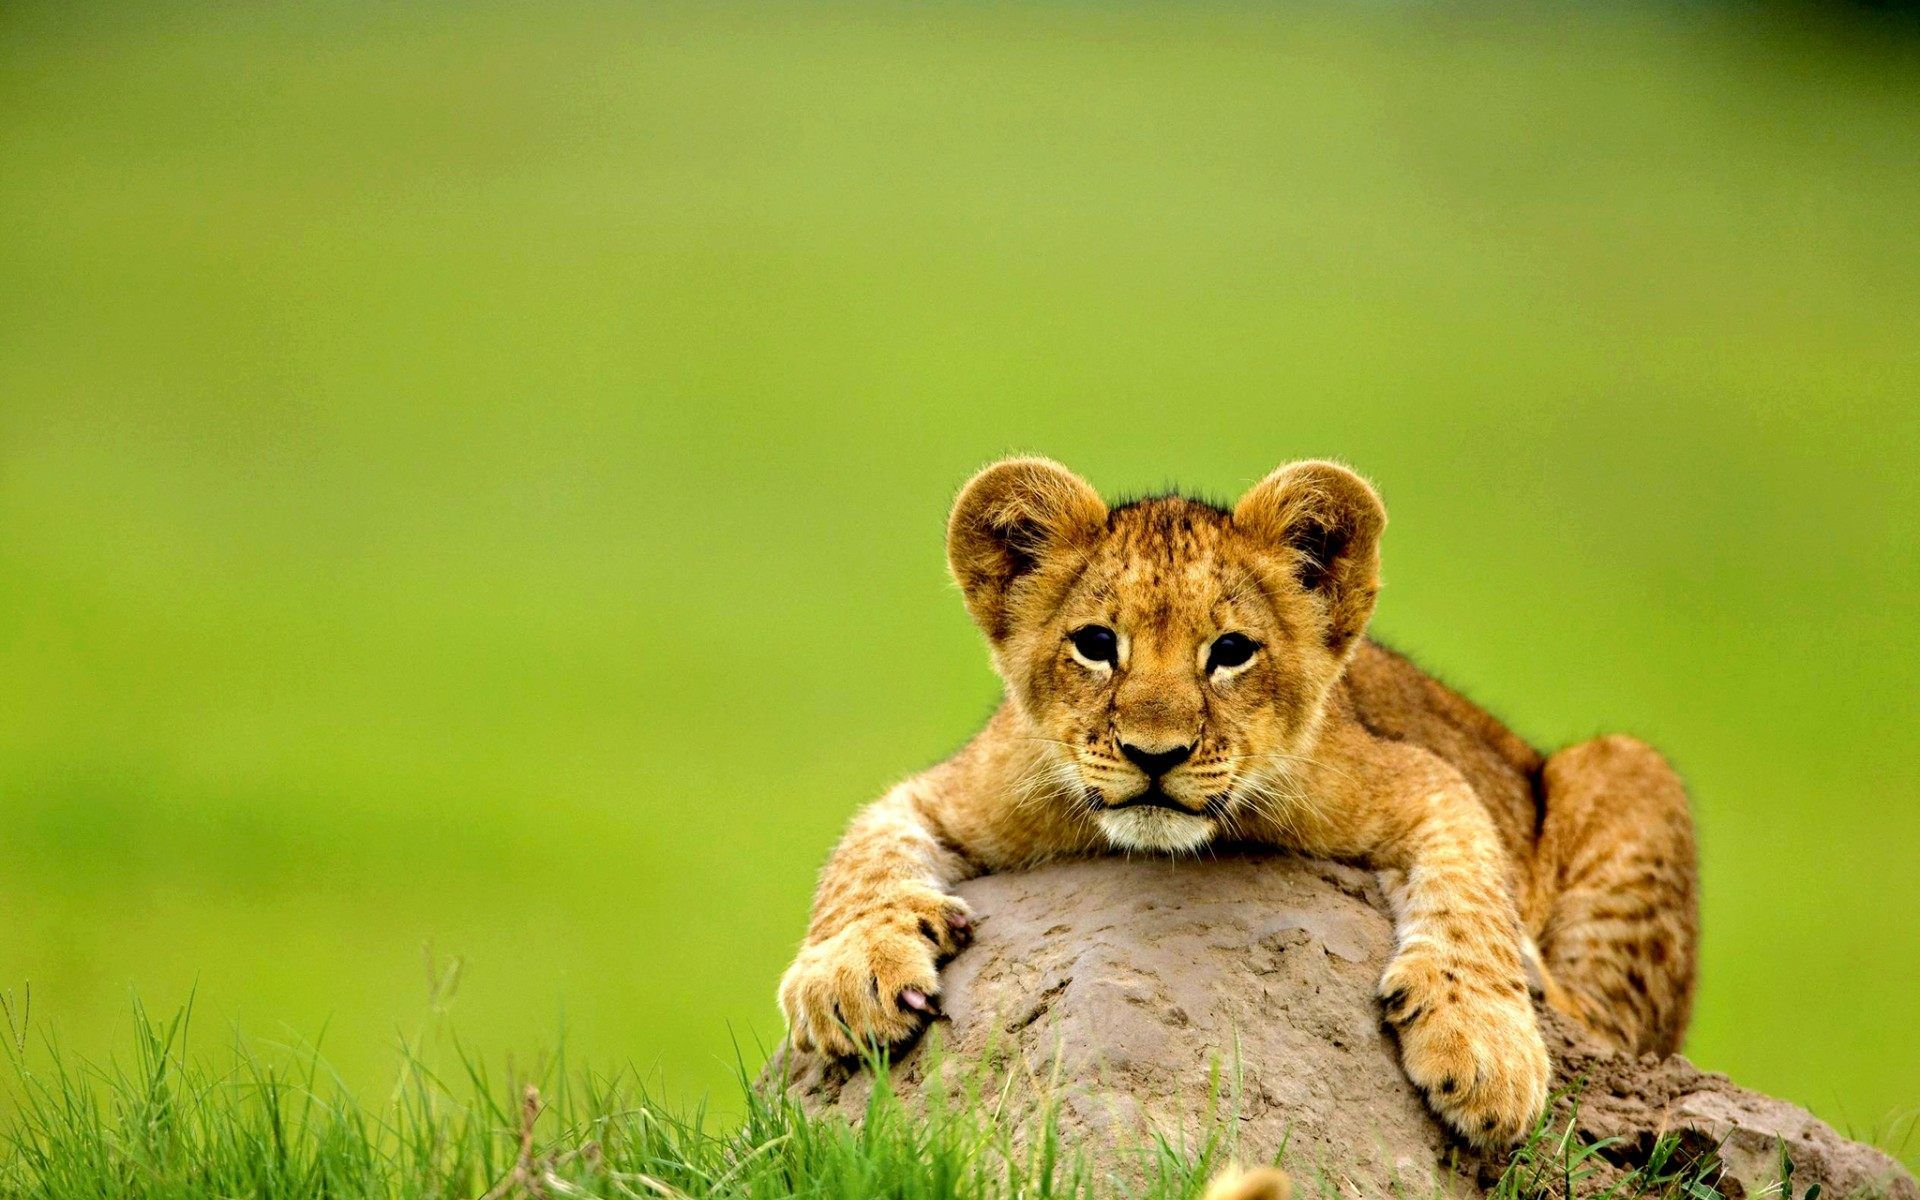 Biggest Collection Of Hd Baby Wallpaper For Desktop And Mobile: Baby Lion Wallpaper For Desktop, Laptop And Mobile In High